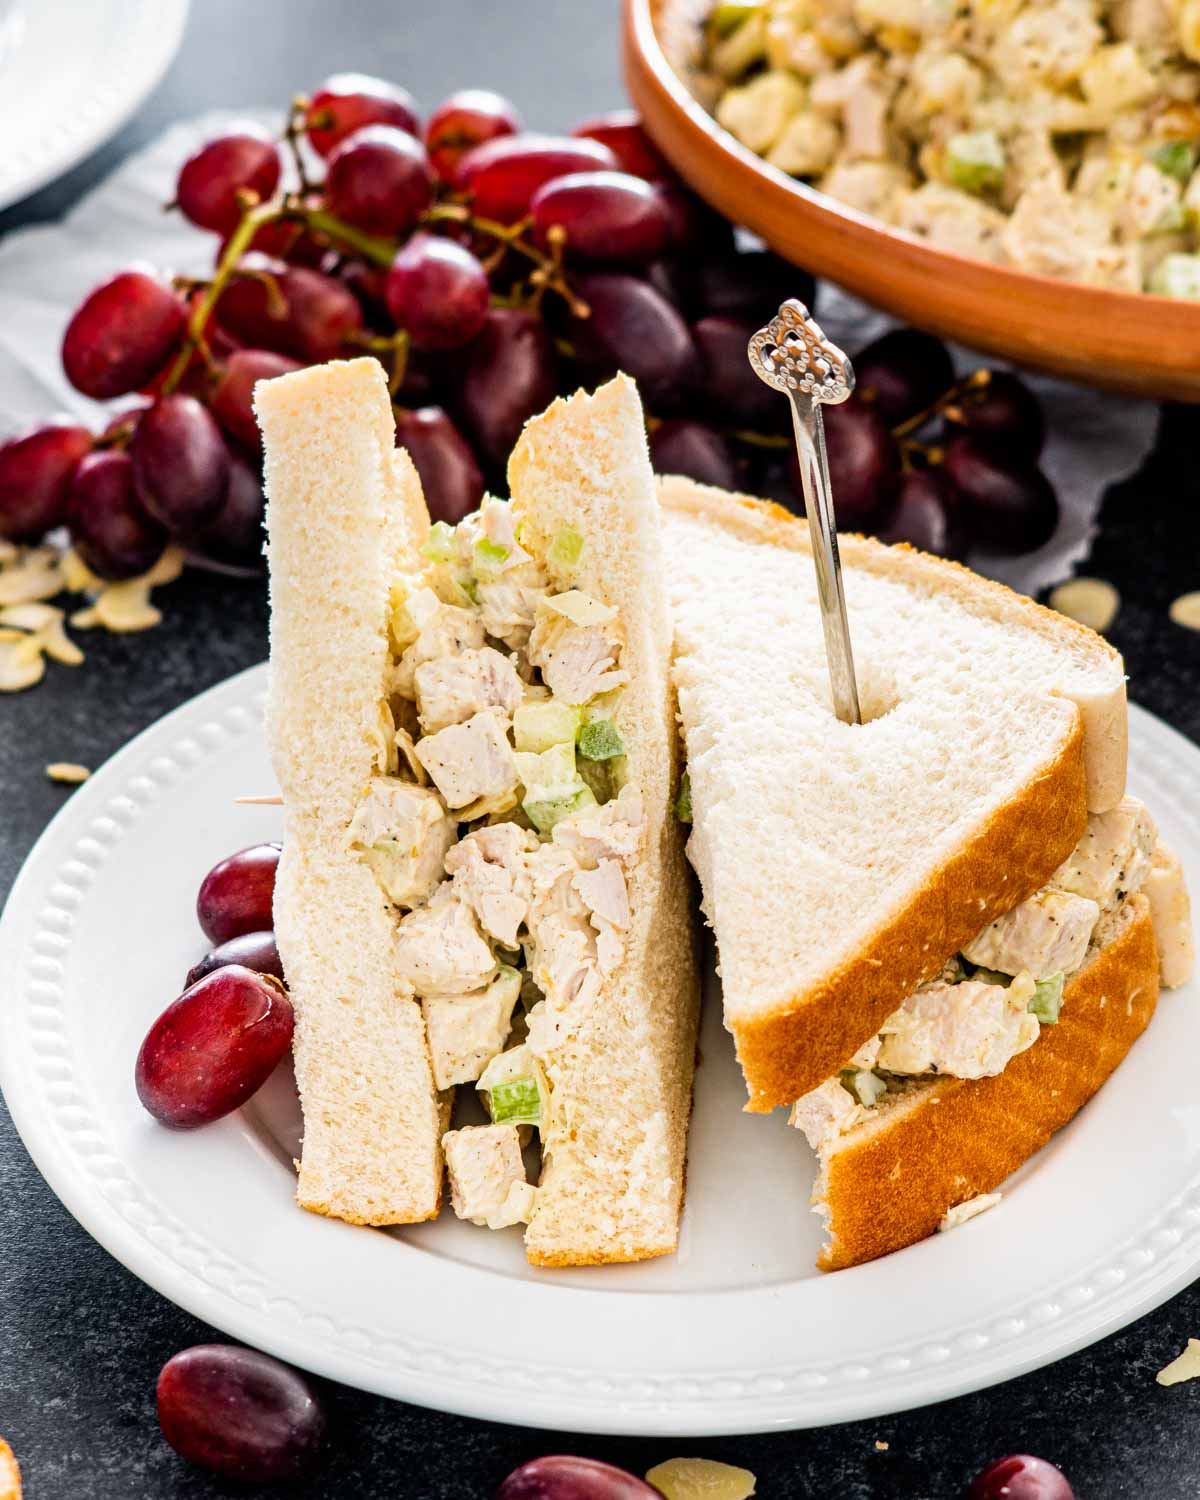 curry chicken salad sandwich cut in half on a white plate.